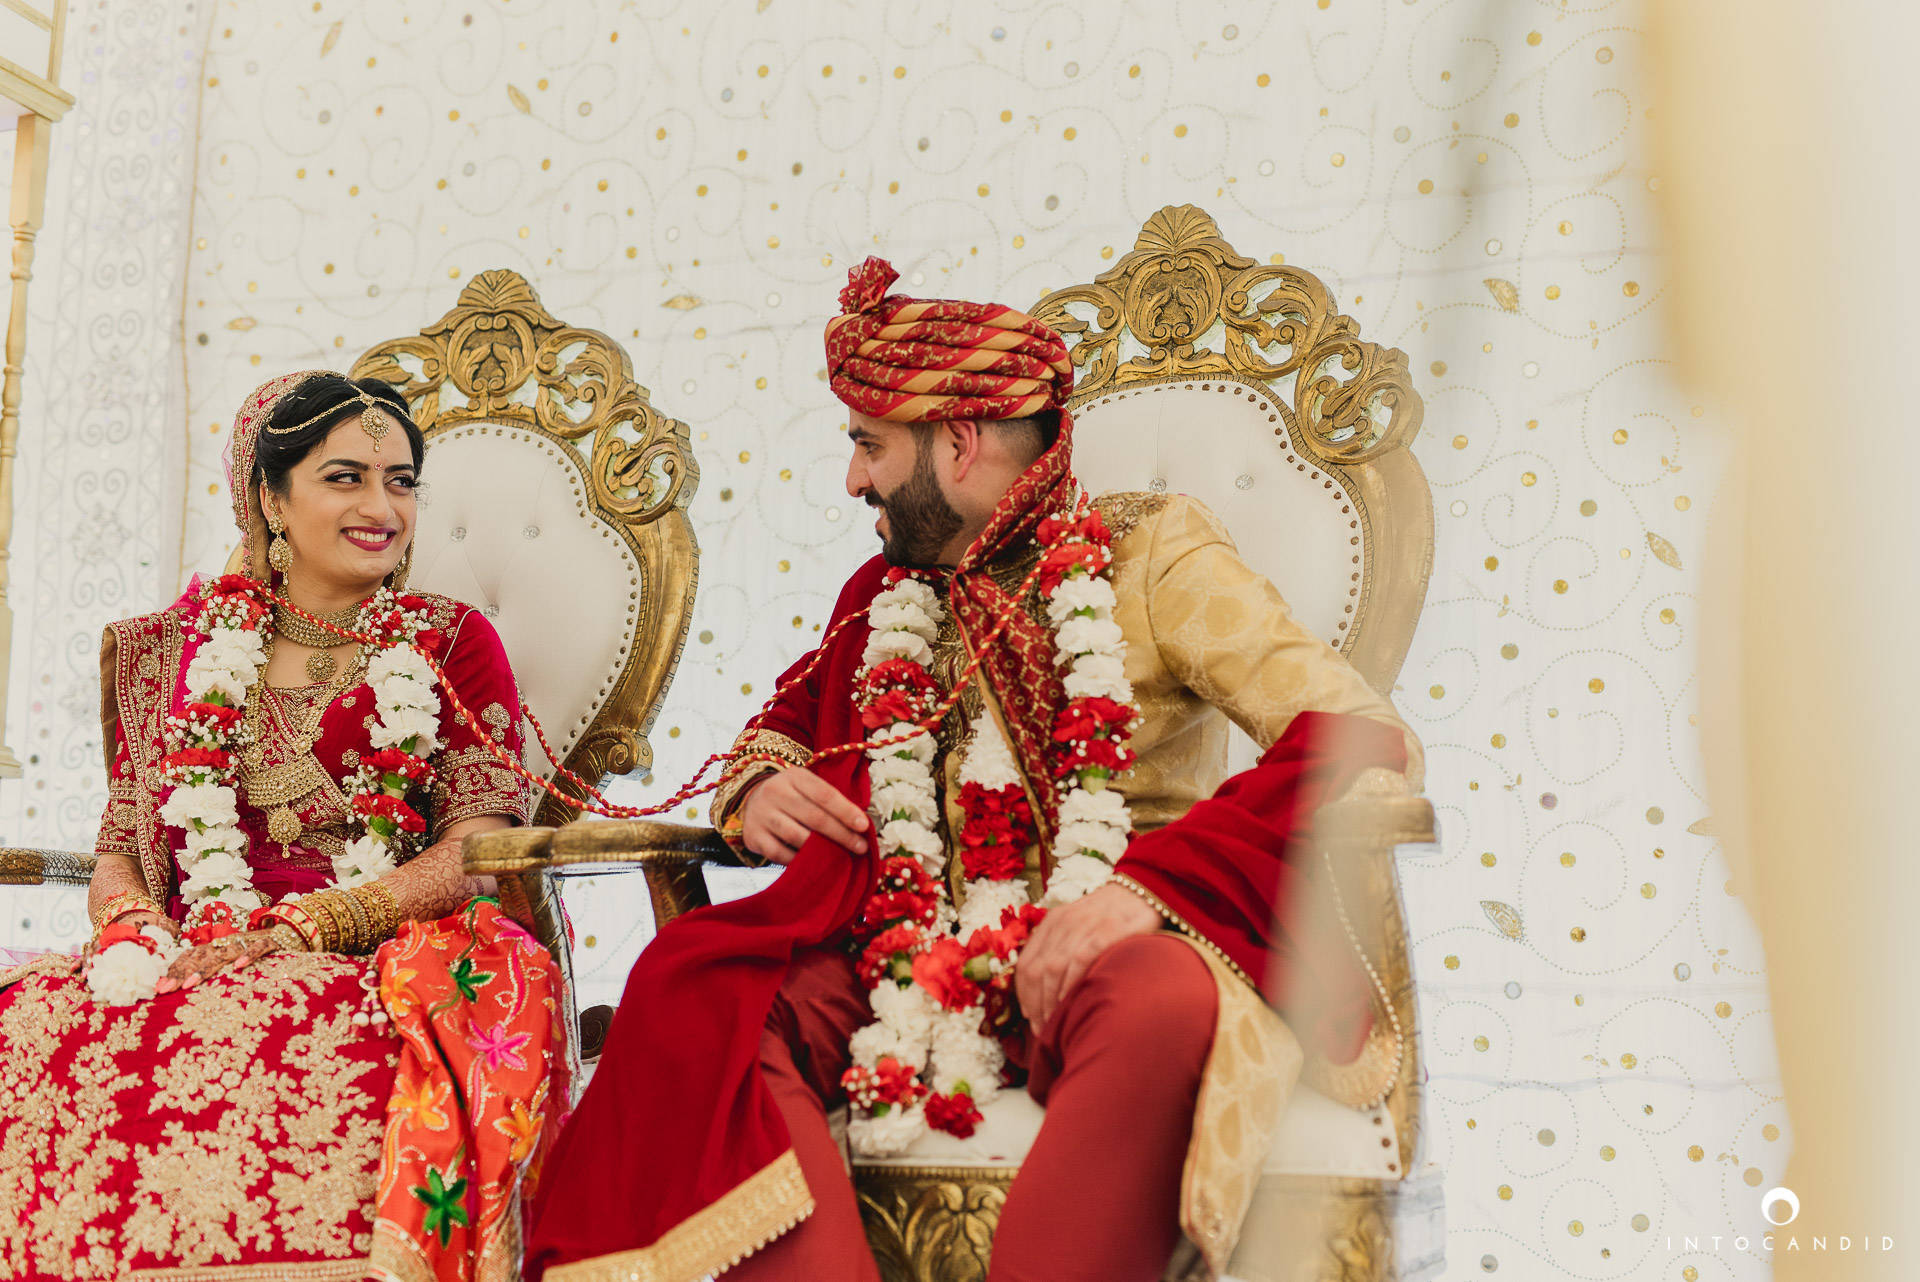 London_Wedding_Photographer_Intocandid_Photography_Ketan & Manasvi_49.JPG